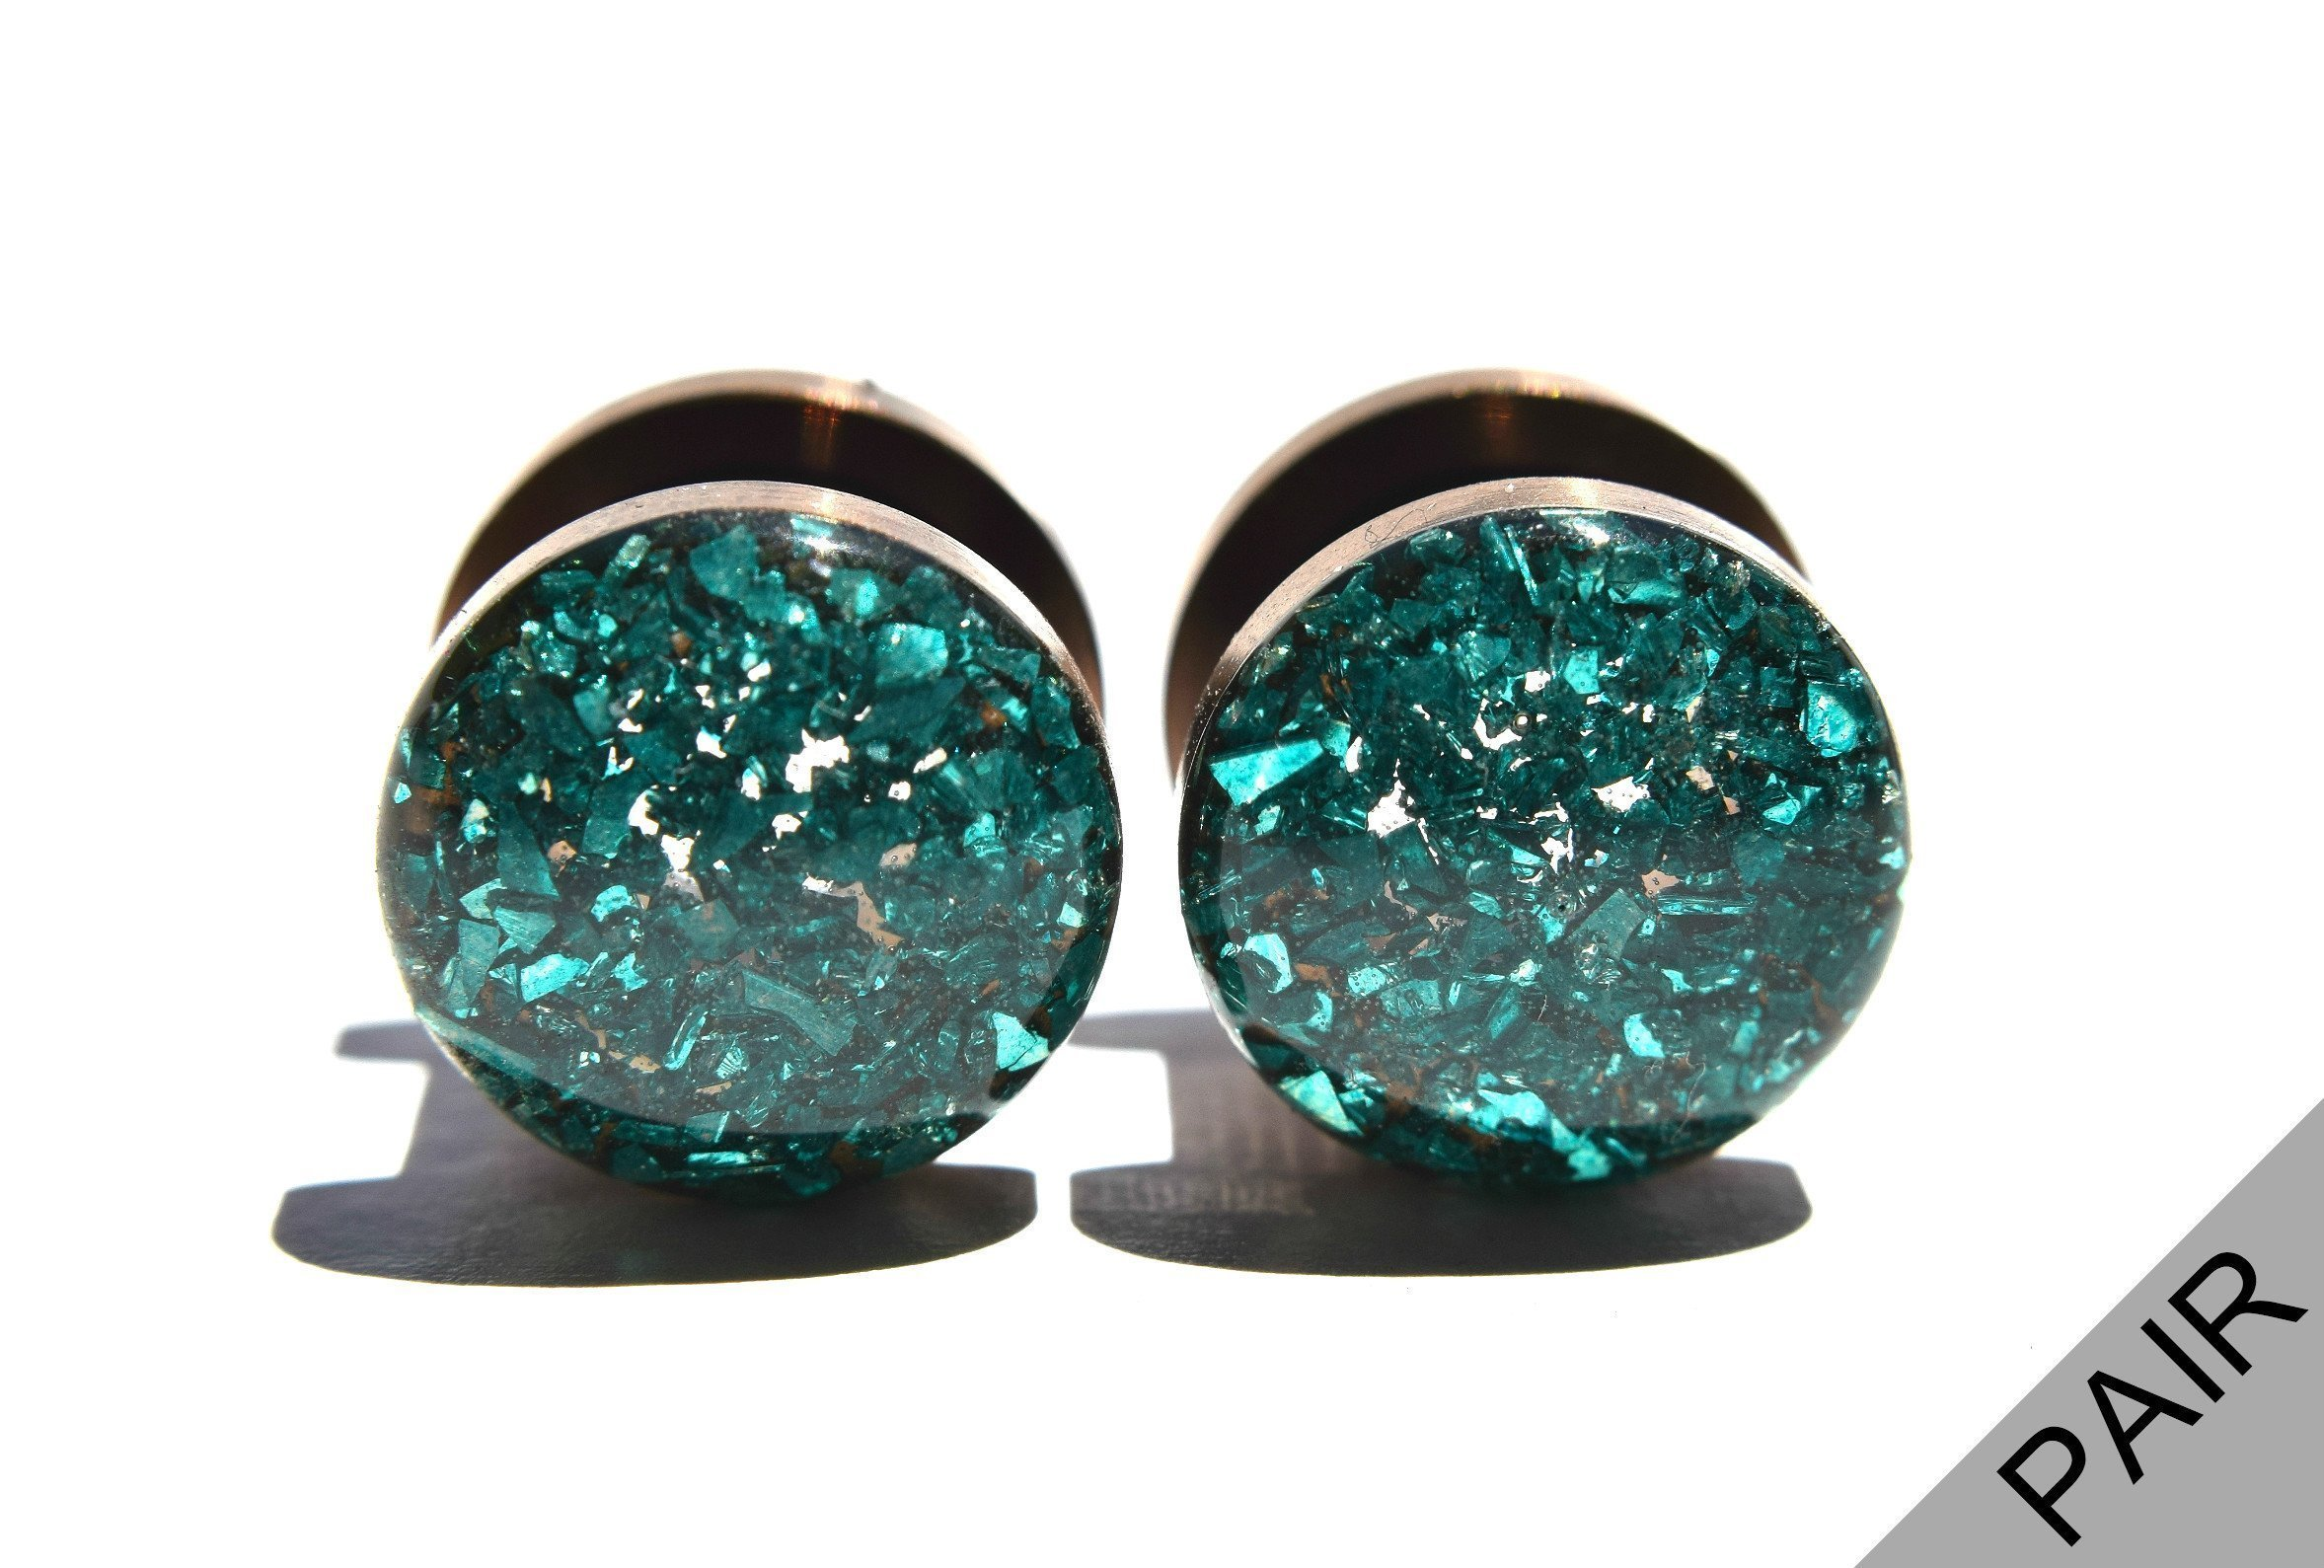 Handmade Emerald Green Crushed Glass shown on Bronze Plugs - 16g, 10g, 8g, 6g, 4g, 2g, 0g, 00g, 7/16in, 1/2in, 9/16in, 5/8in, 11/16in, 3/4in, 7/8in and 1 inch